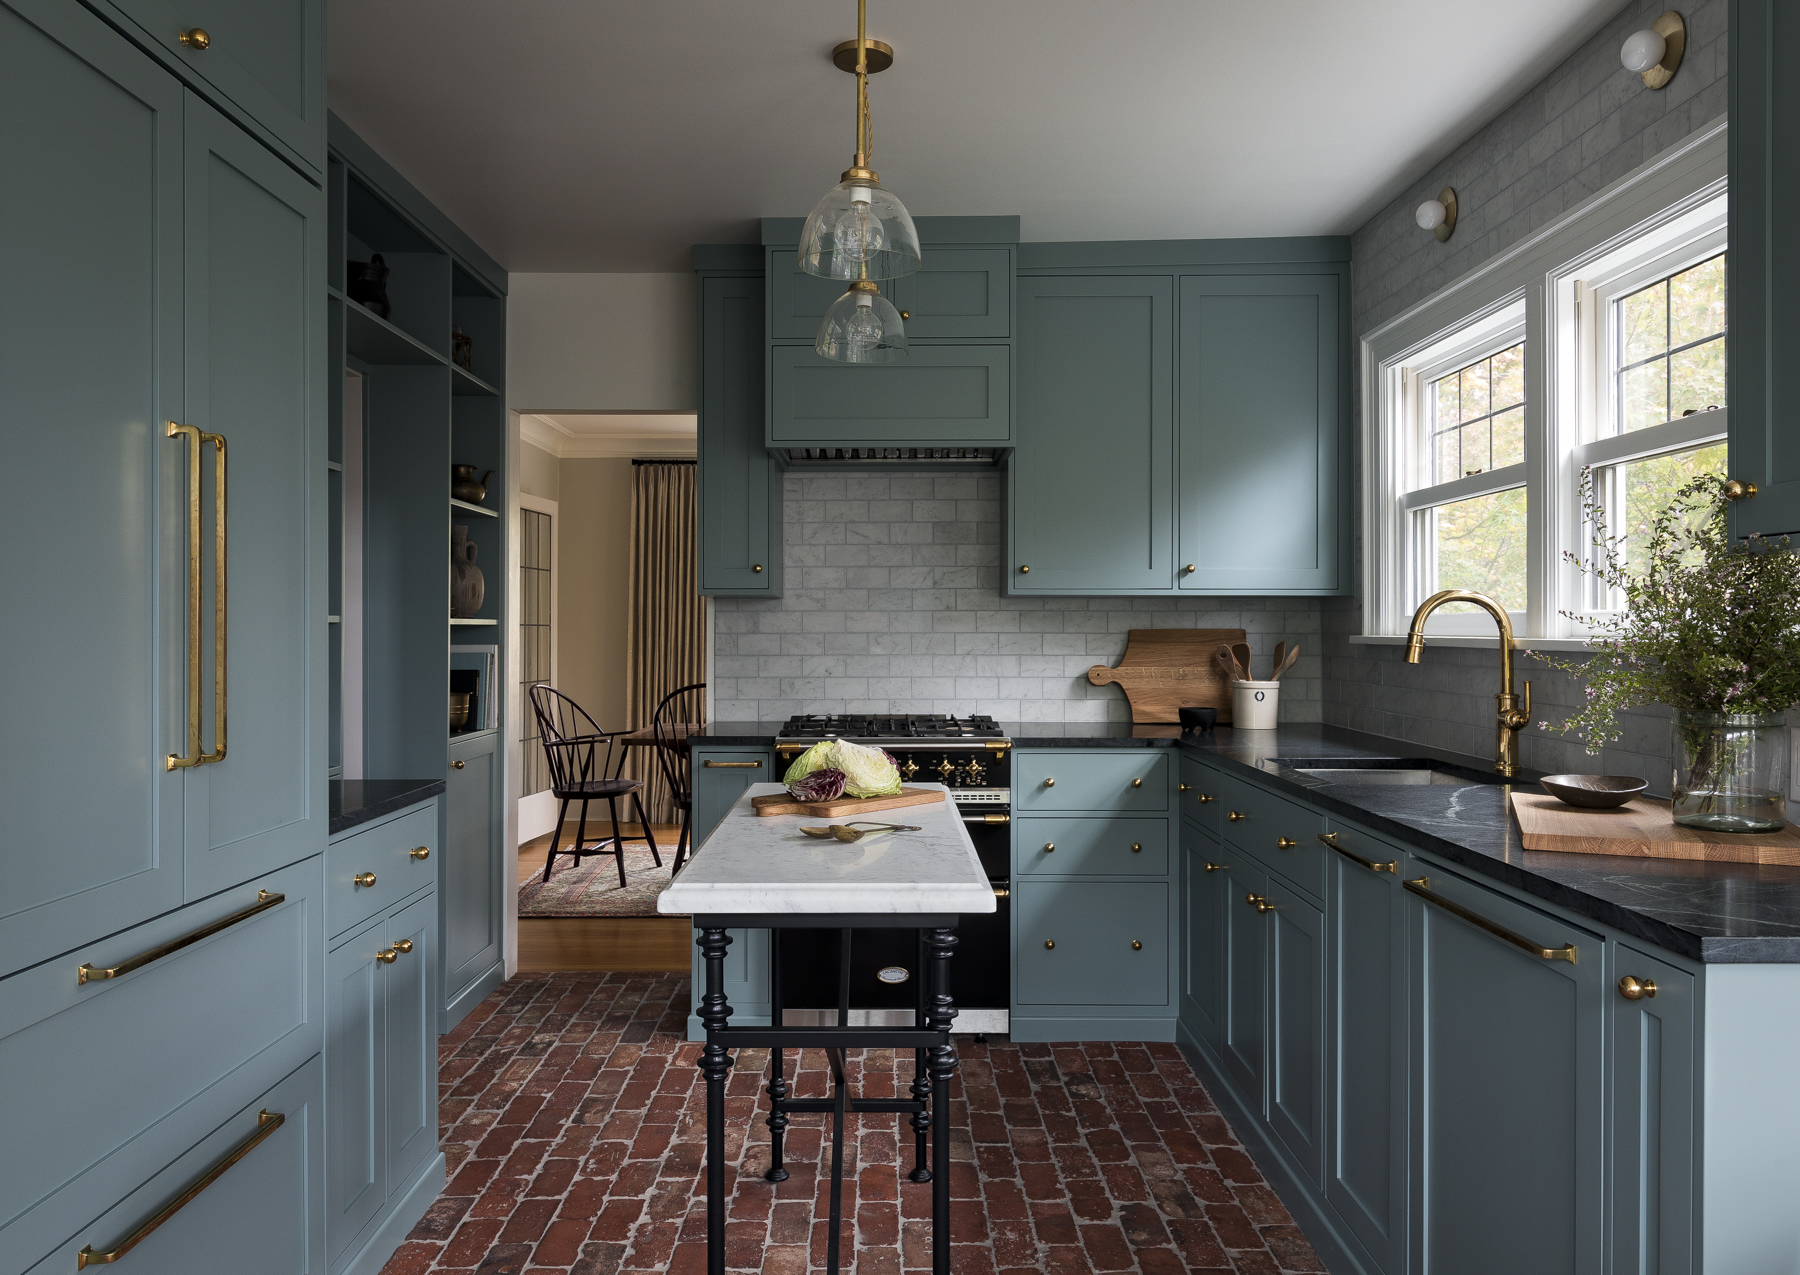 Calling It — These Kitchen Cabinet Color Ideas Will Be in Every Stylish Home in 2019